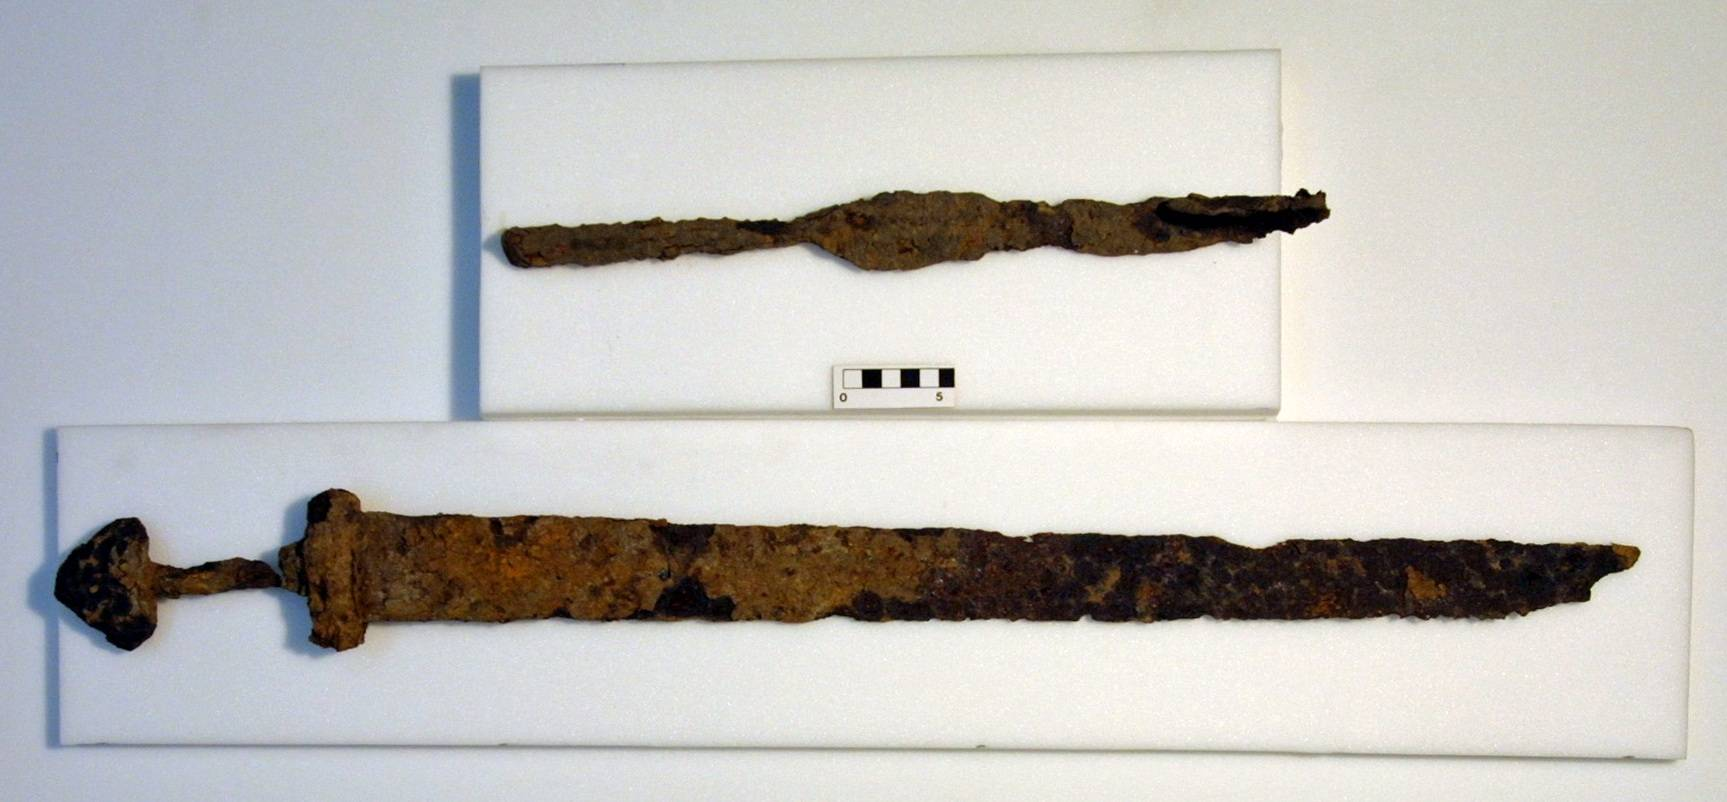 Iron sword and spearhead found in 2004. National Museum of Ireland.